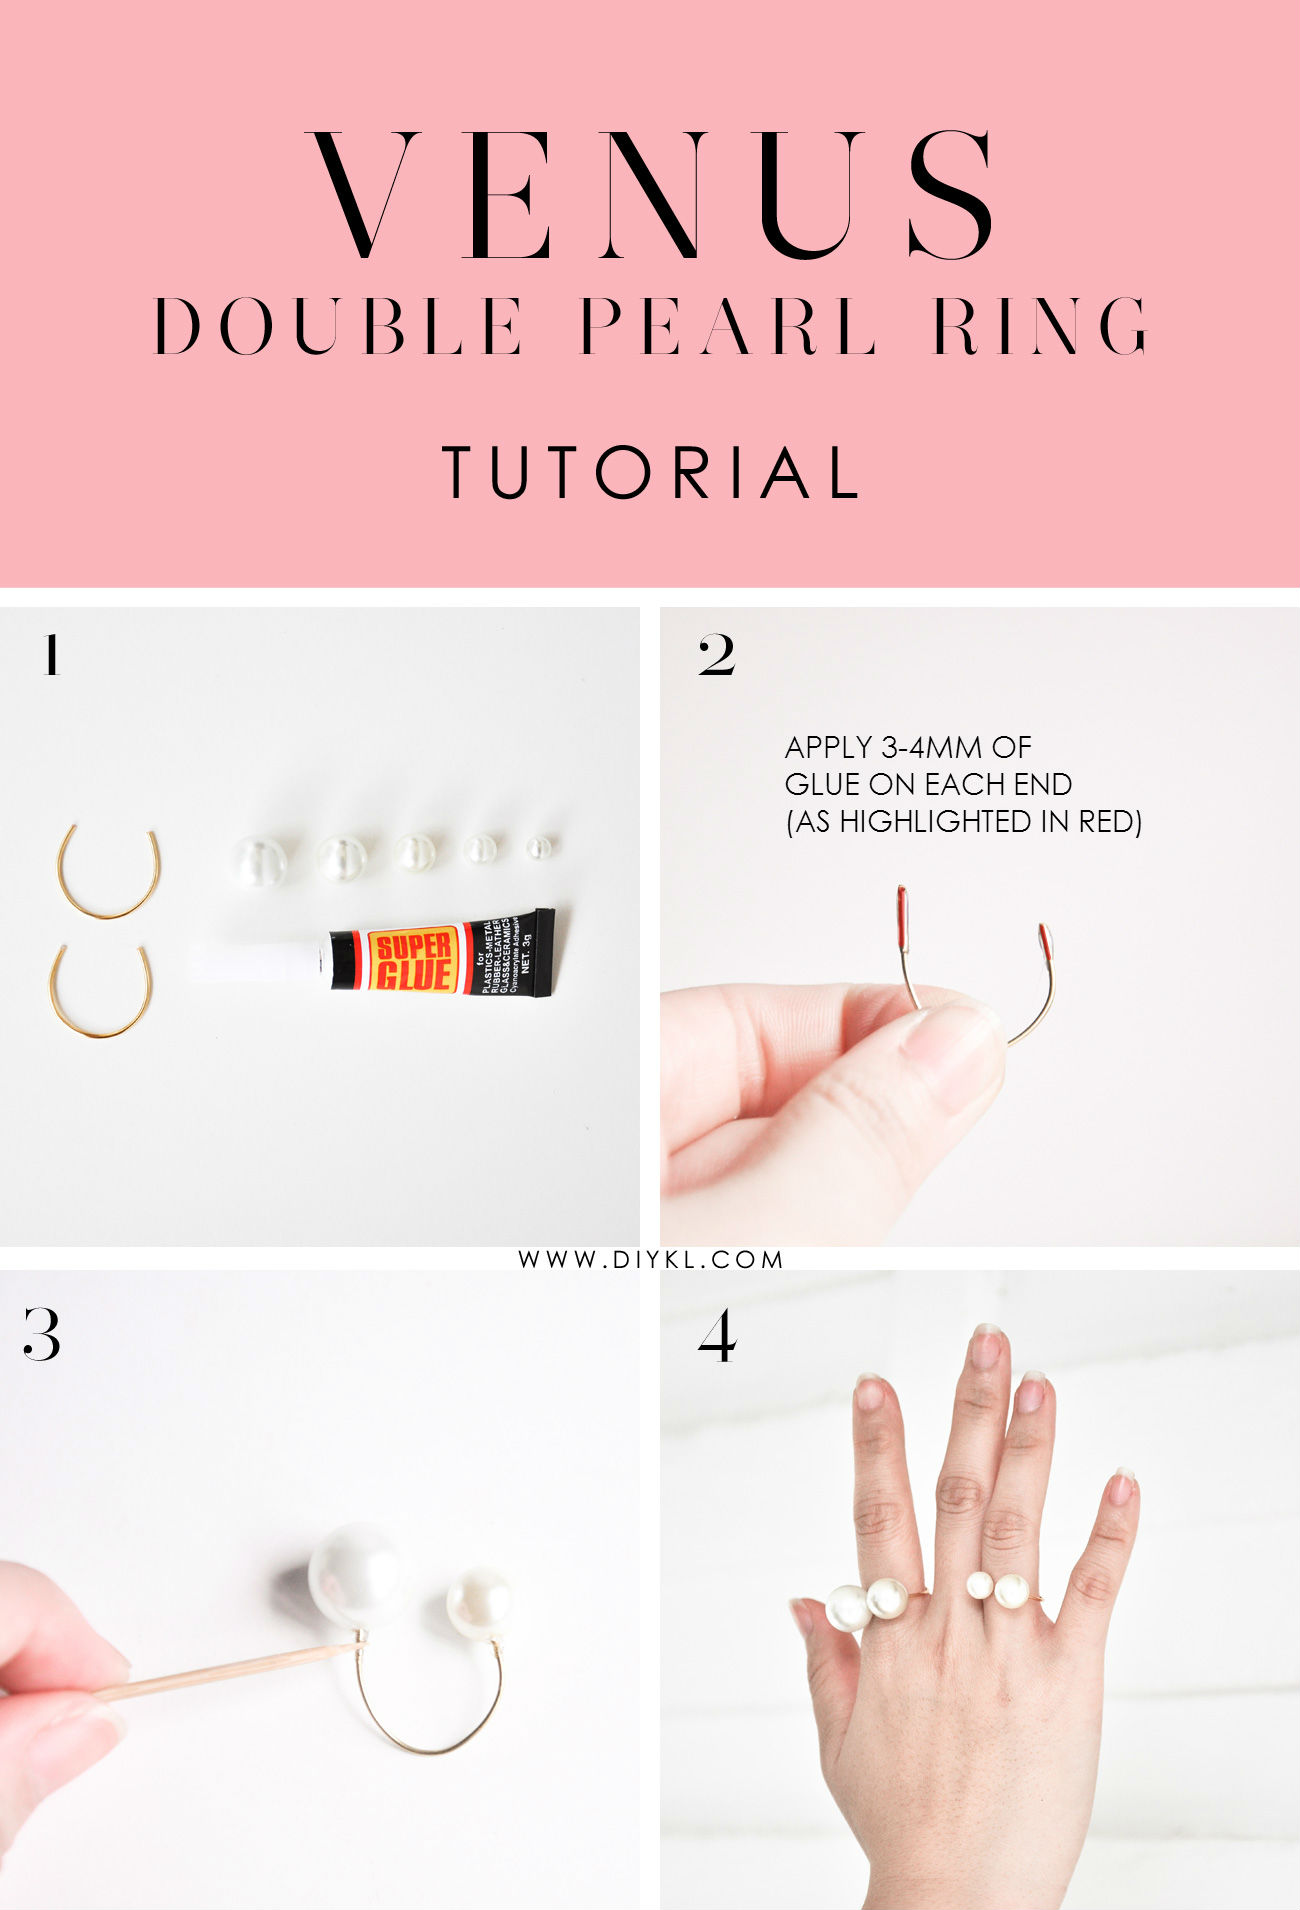 DIYKL VENUS Double Pearl Ring Tutorial